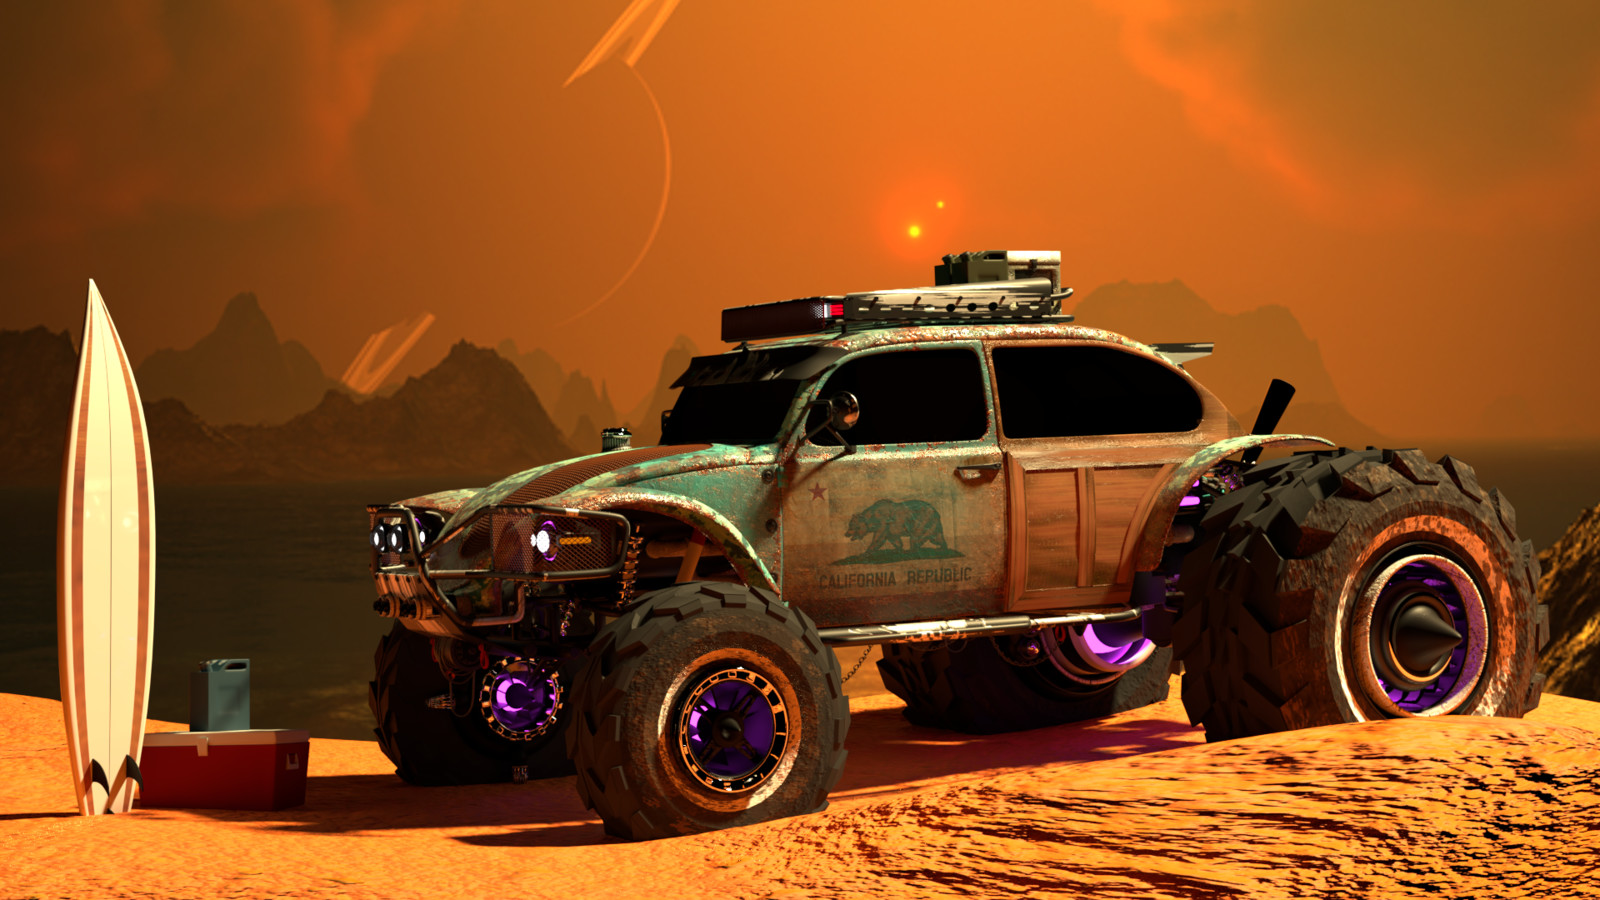 Baja Space Bug set up o n the beach of a distant planet